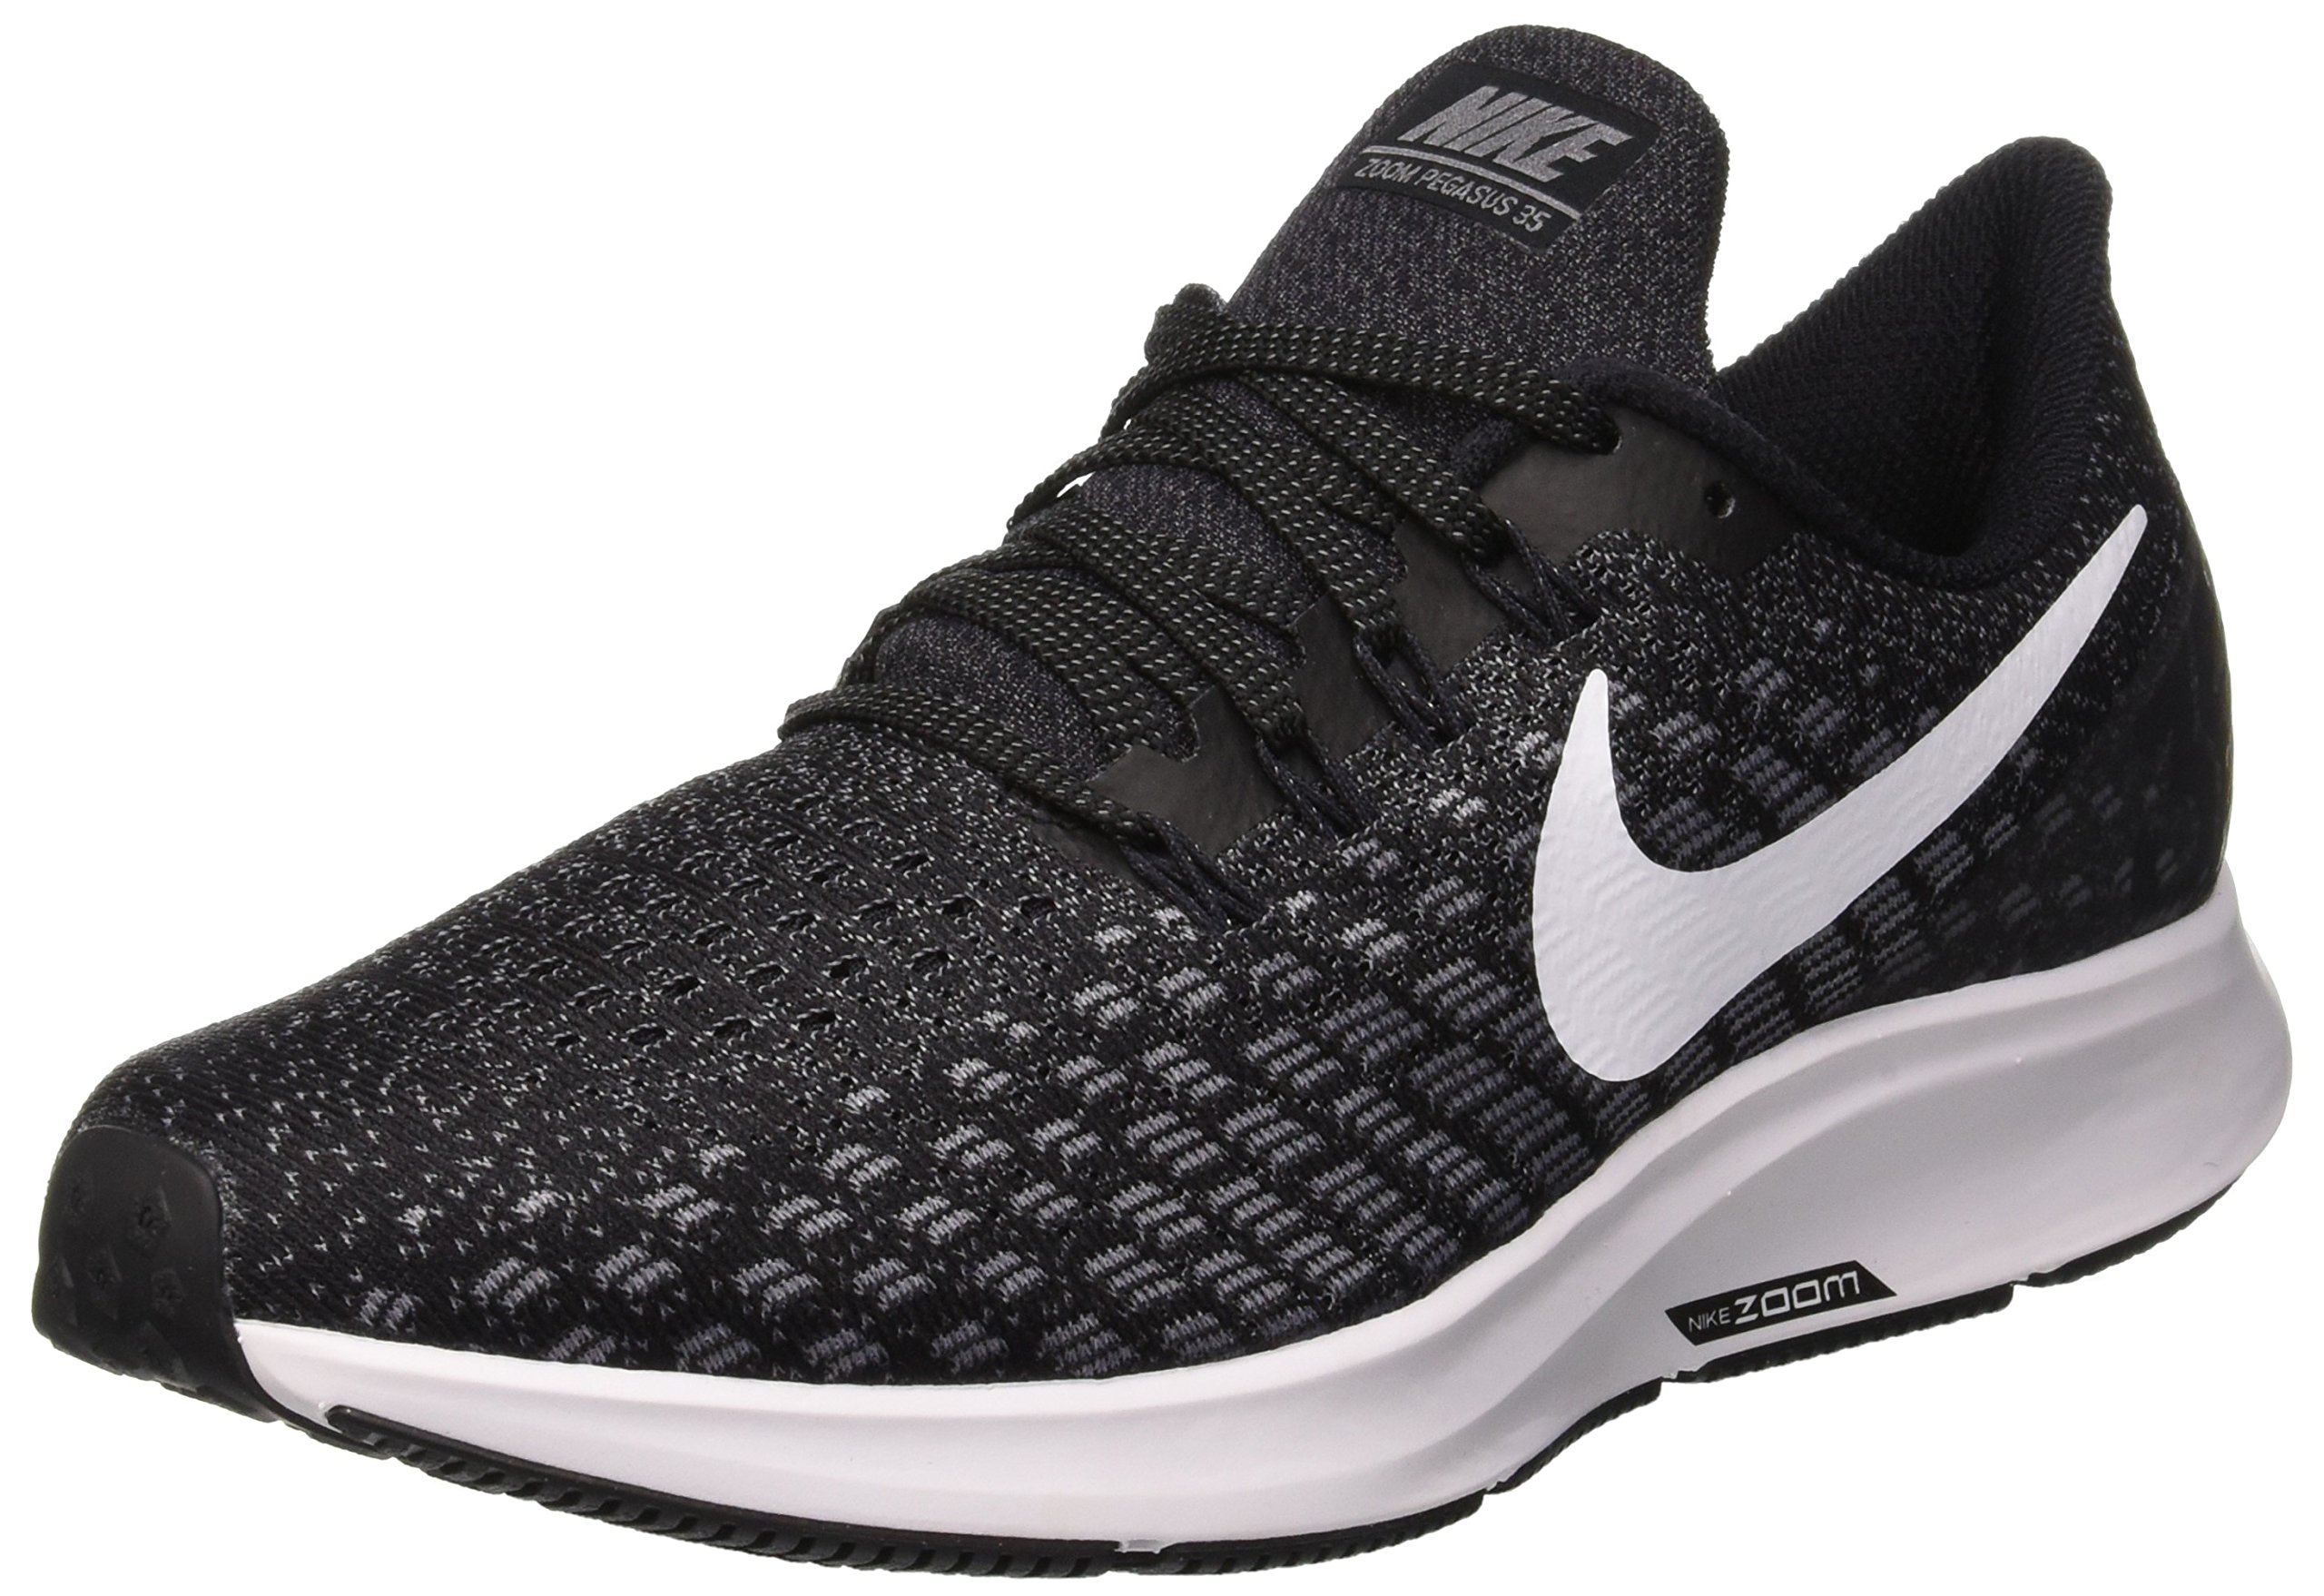 Nike Air Zoom Pegasus 35 Sz 8 Womens Running Black/White-Gunsmoke-Oil Grey Shoes by Nike